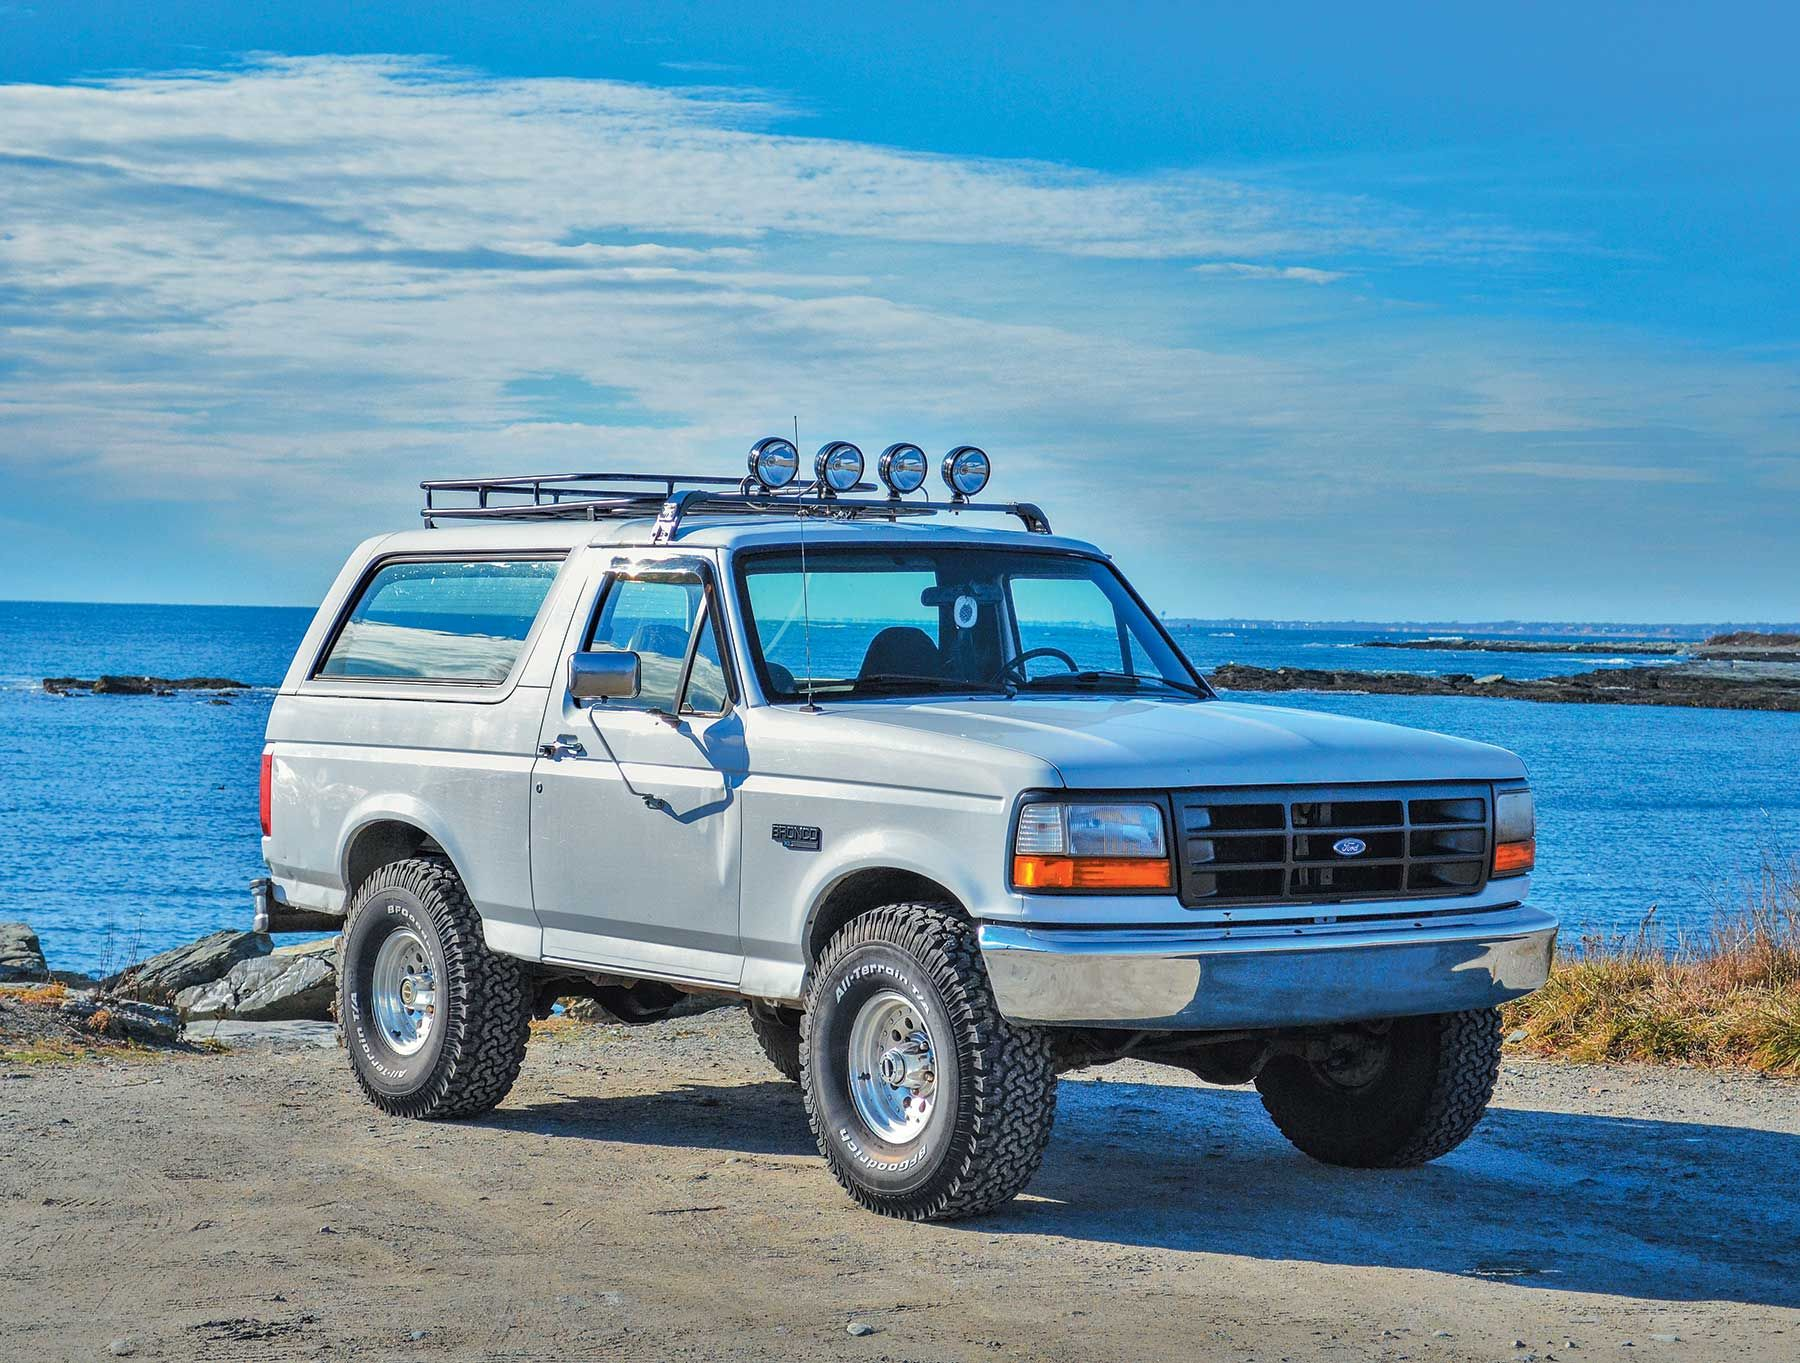 Seth honemanns 1996 ford bronco when i was 20 i went ahead and bought the bronco while i was stationed in alaska this truck had never seen salt roads